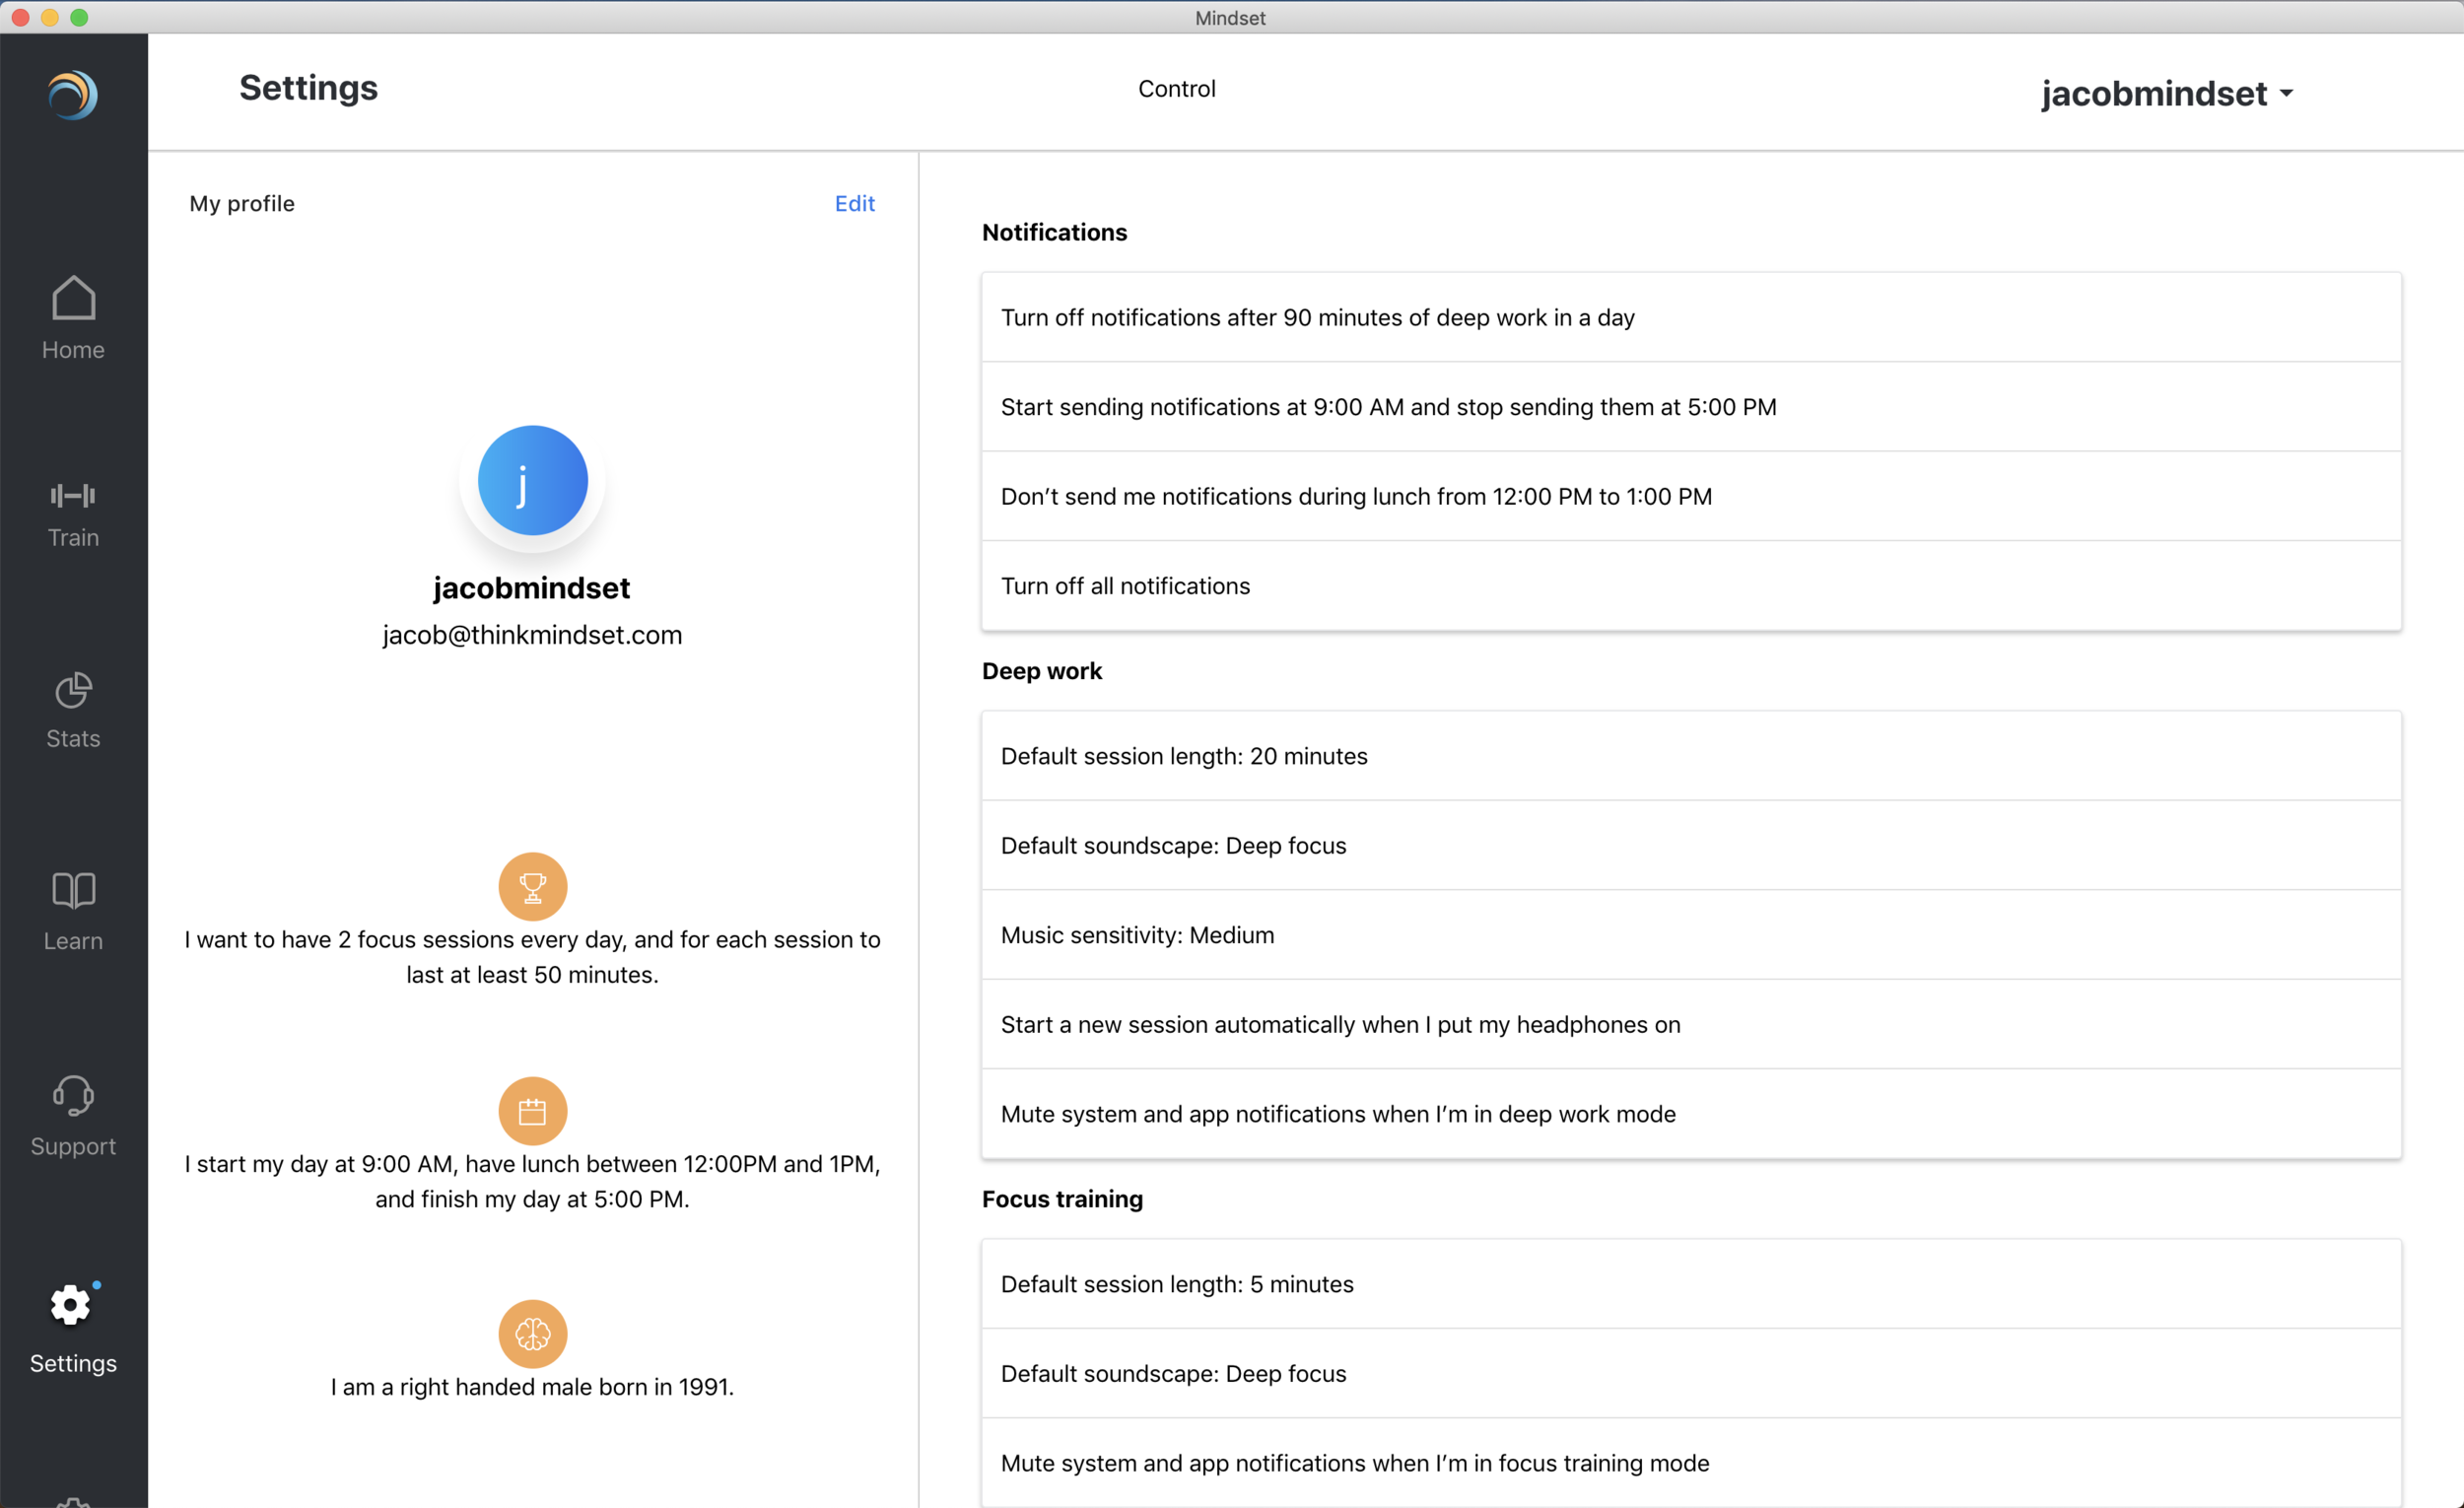 Our latest settings page, integrated into the app's back end and cloud!